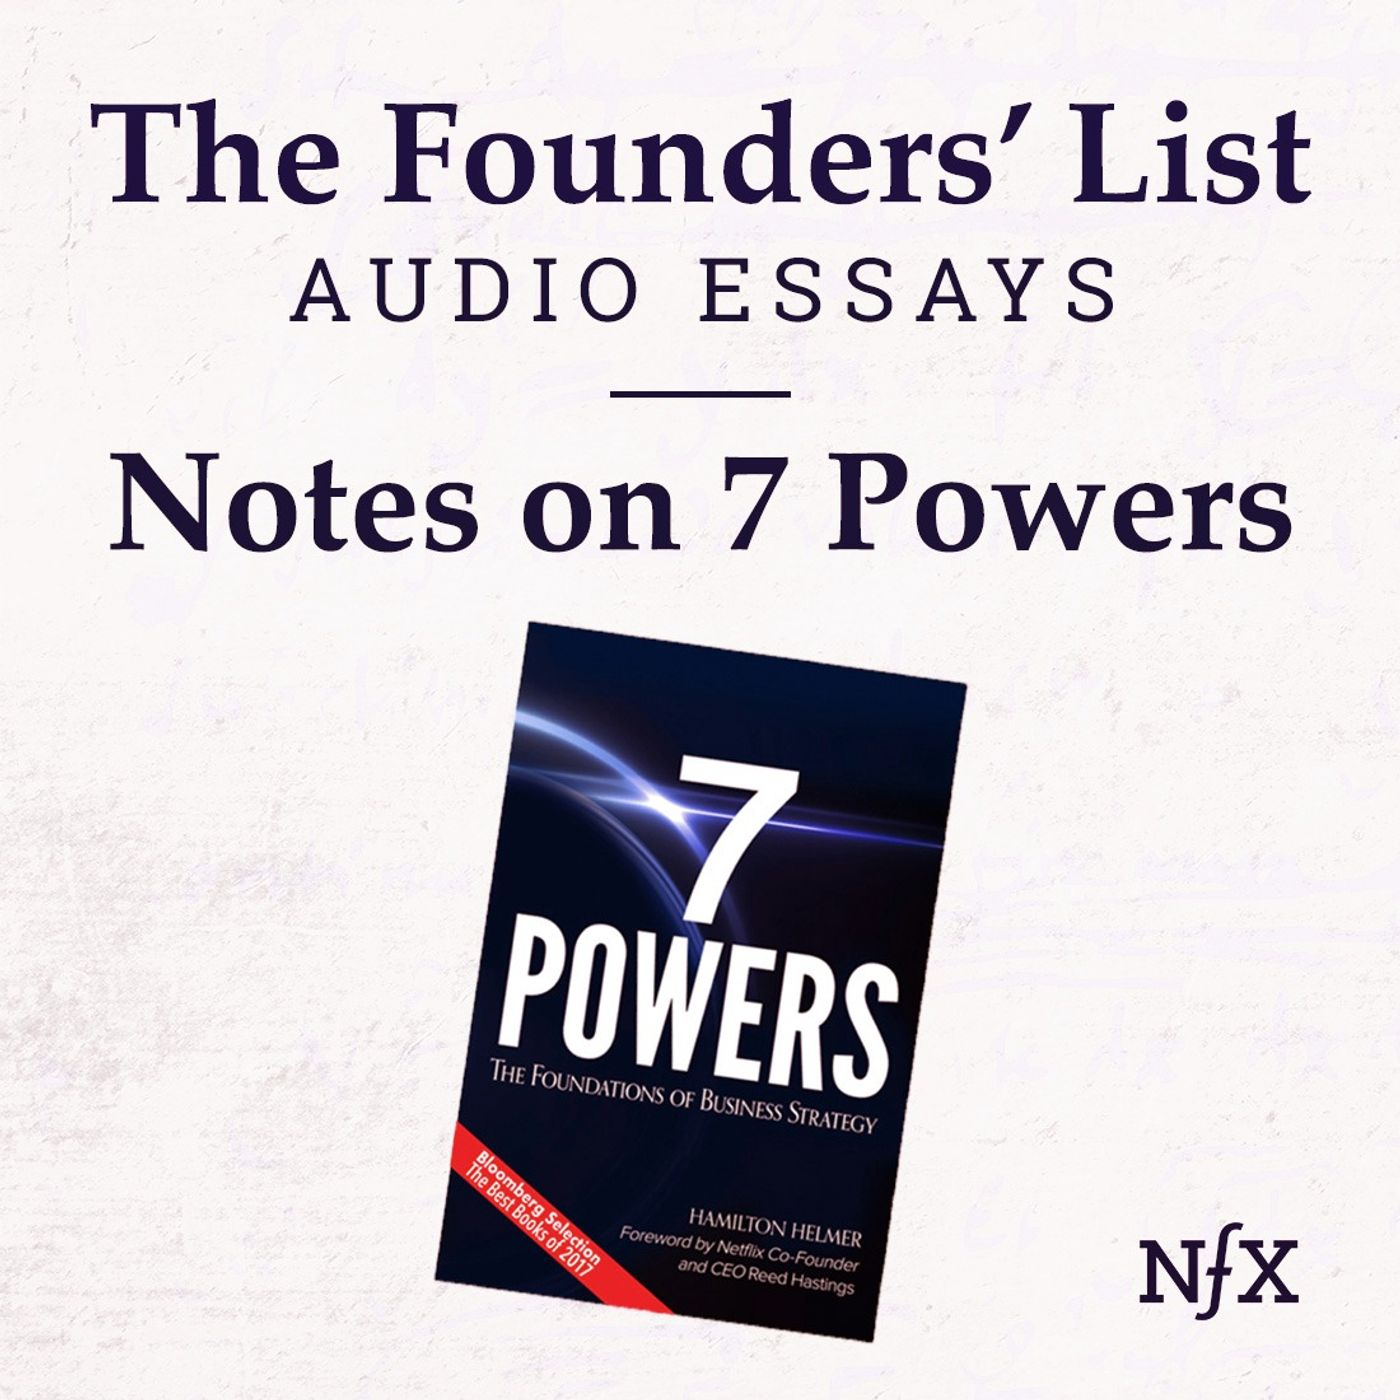 The Founders' List: Mind the Moat: Notes on 7 Powers (written by Hamilton Helmer) from Flo Crivello (Founder & CEO Teamflow)